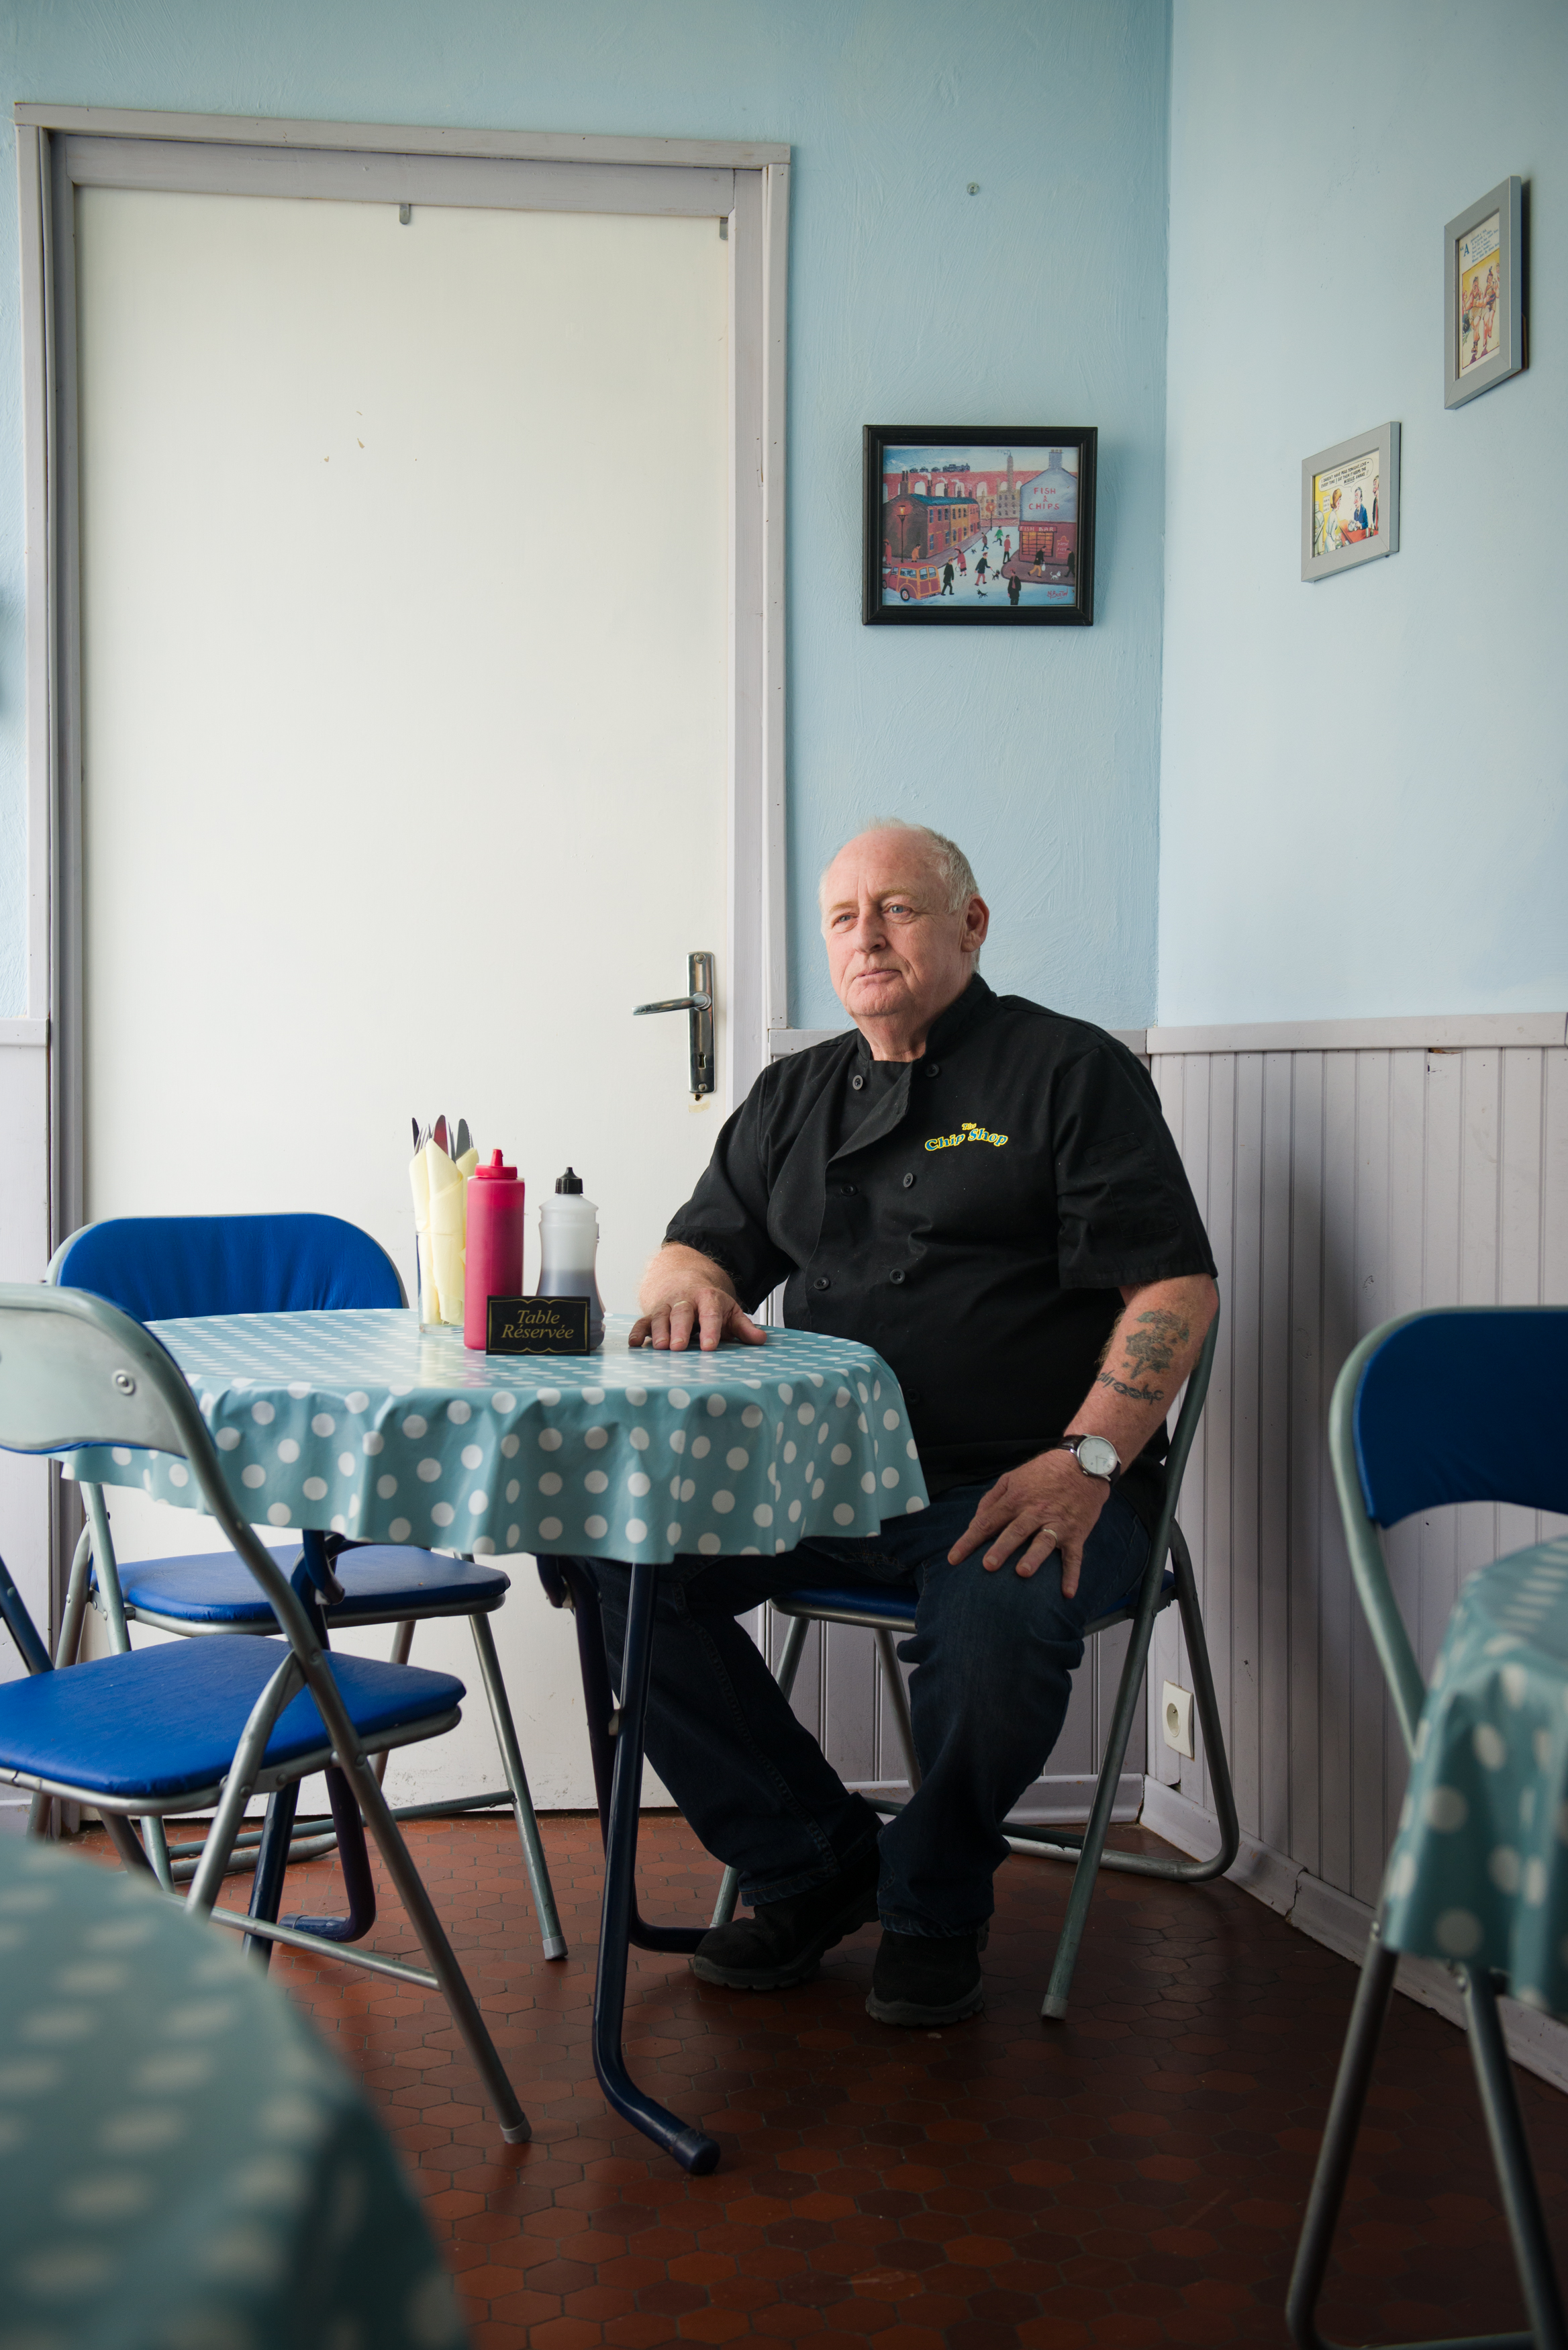 """Chris Middleton, 62, in The Chip Shop, a fish and chips restaurant he runs with his wife in Confolens, France. Chris has lived & worked in France for 12 years, he has a Carte Vitale (french healthcare) and when he retires in a couple years he will collect a French pension. """"They [English pensioners] don't take anything from the state, but they contribute with taxes and everything else. I think the main problem is going to be healthcare for the people who are retired who don't know whats going to happen with that yet. We are going to be ok because we worked here, so we have a carte vitale so we get all the benefits you have with that."""""""